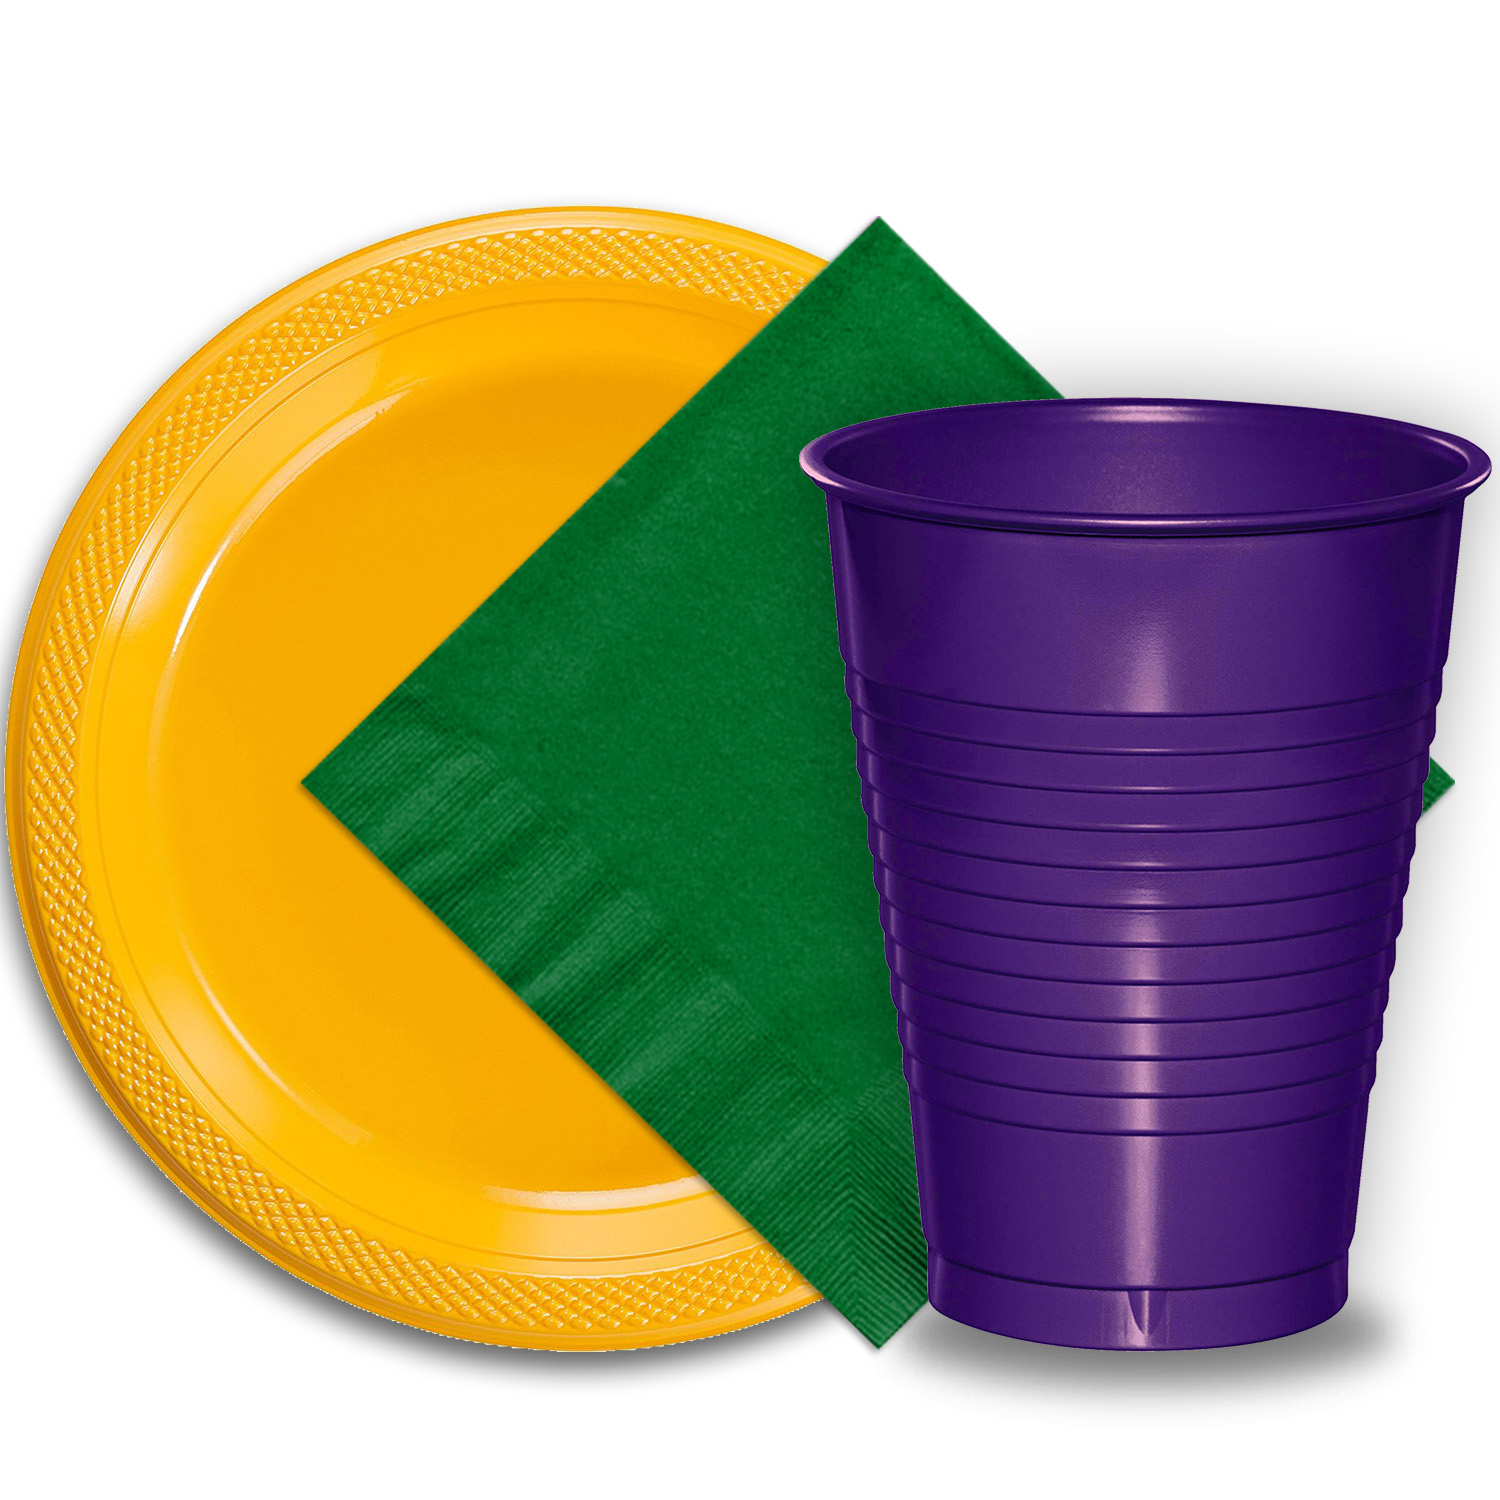 """50 Yellow Plastic Plates (9""""), 50 Purple Plastic Cups (12 oz.), and 50 Emerald Green Paper Napkins, Dazzelling Colored Disposable Party Supplies Tableware Set for Fifty Guests."""